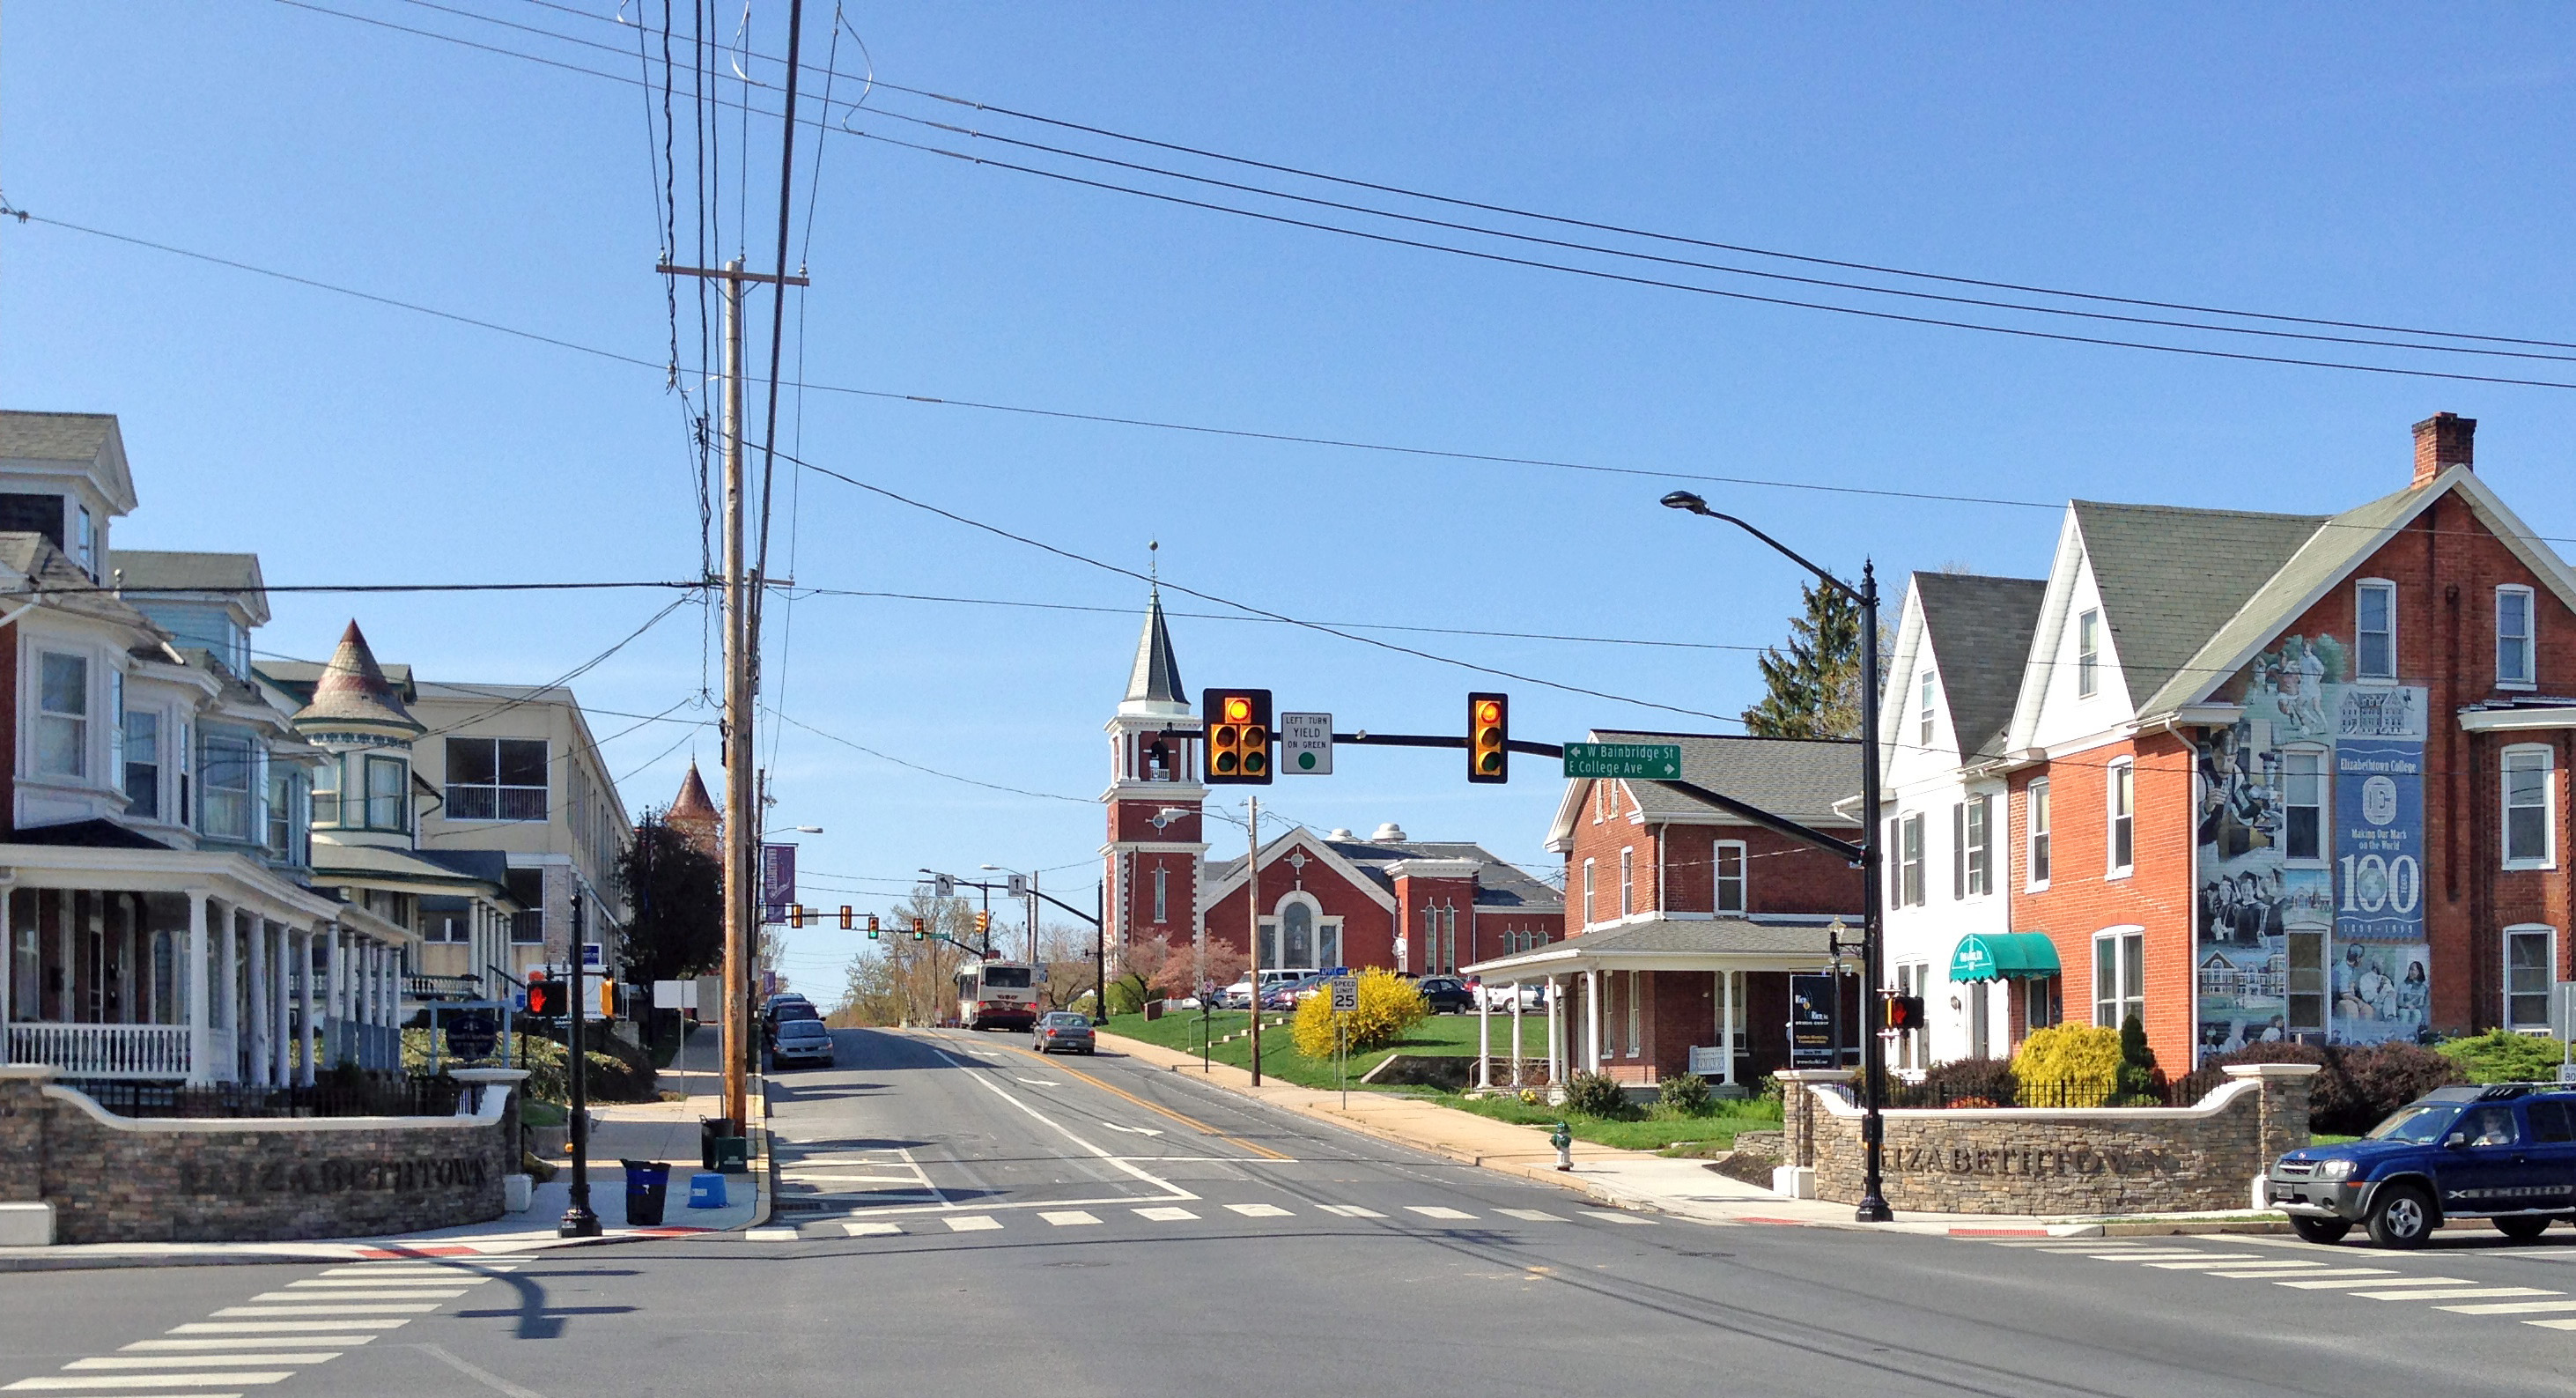 West College Avenue Street View